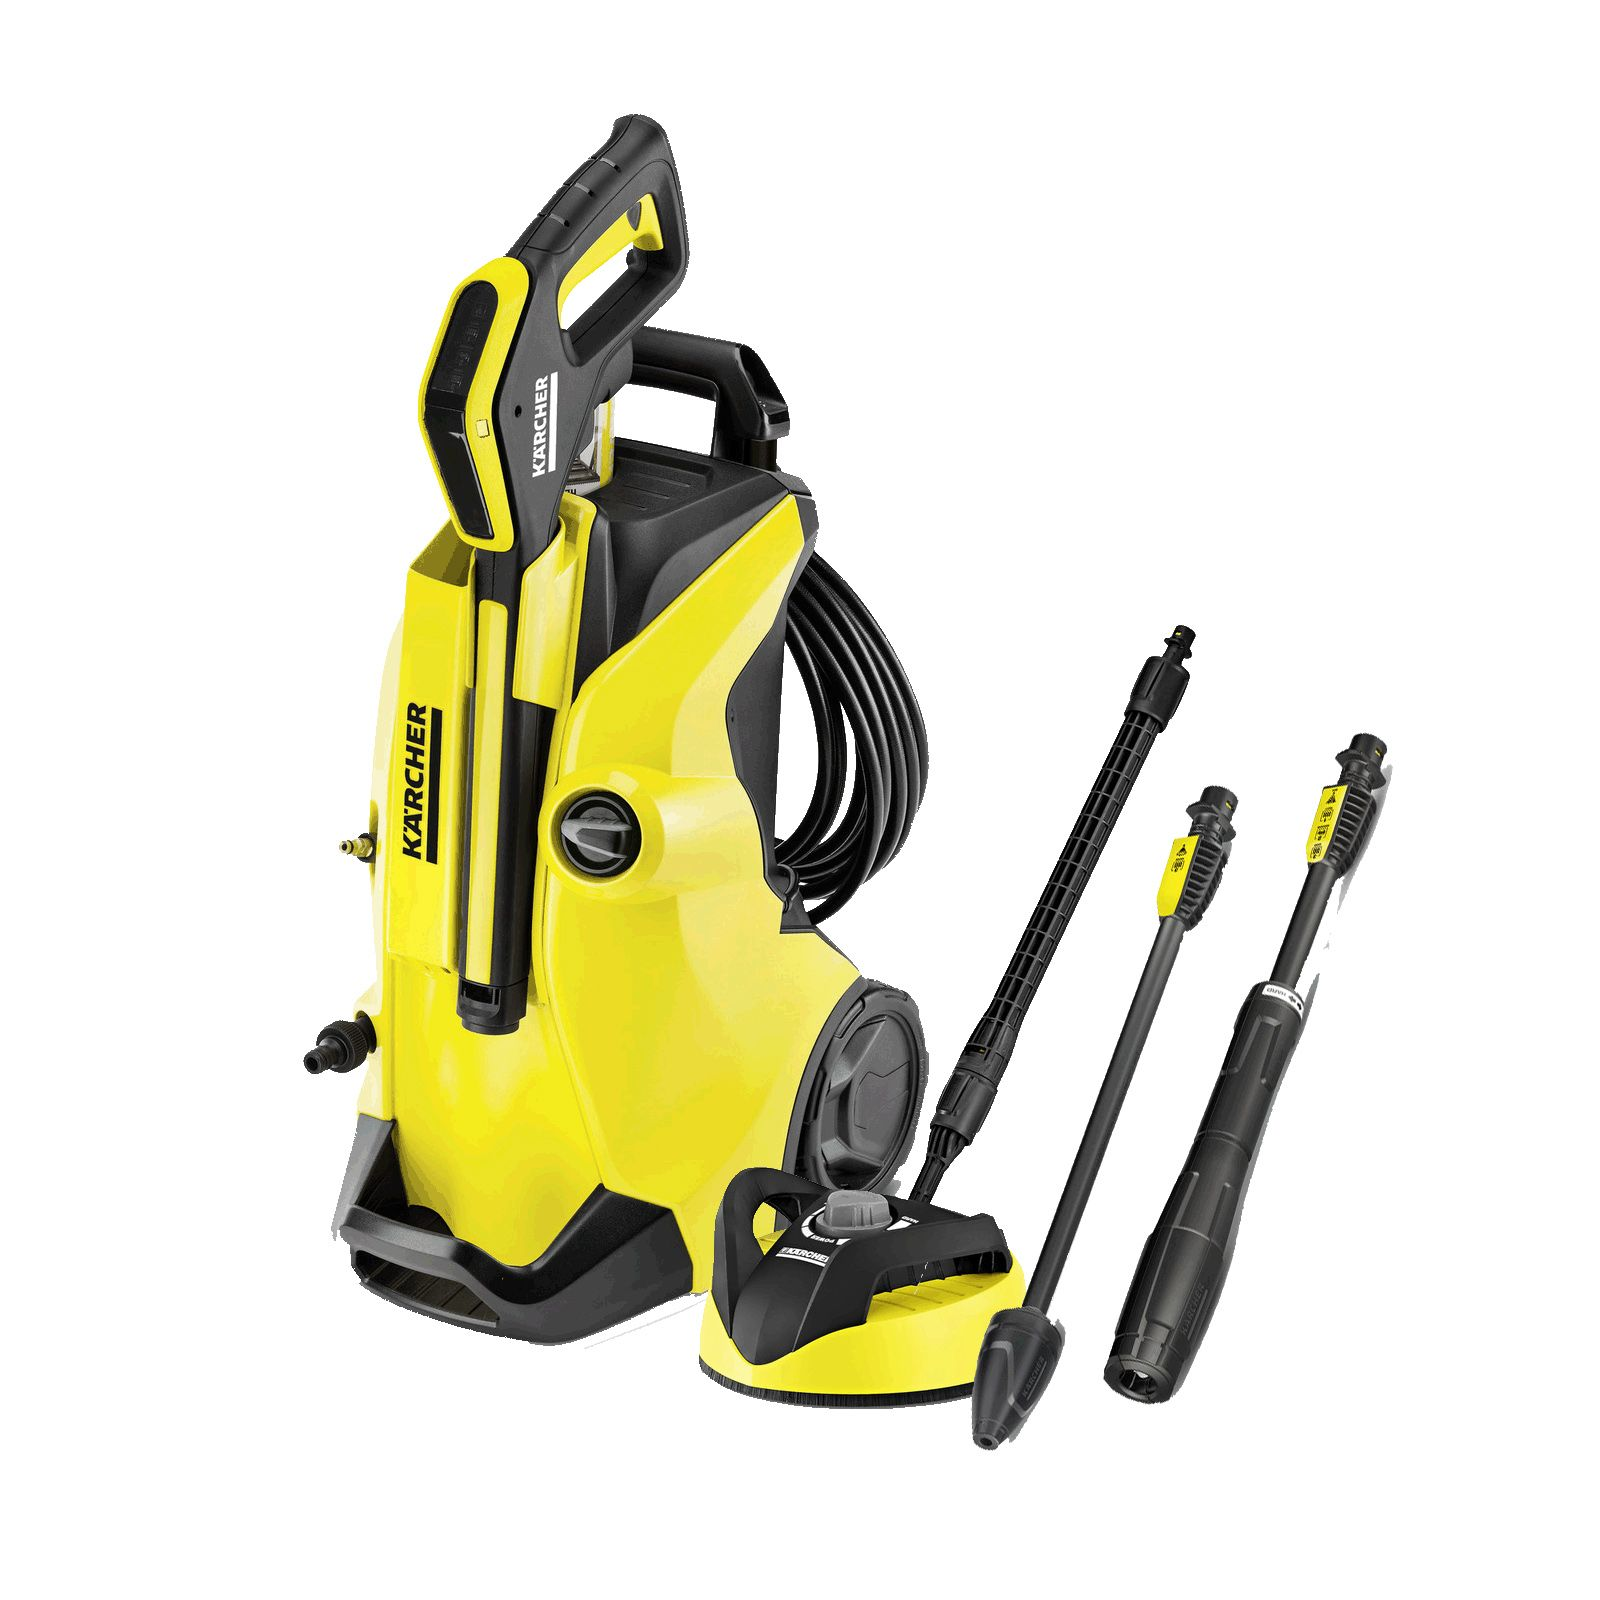 Karcher K4 Full Control Home Karcher K4 Full Control Home Pressure Washer